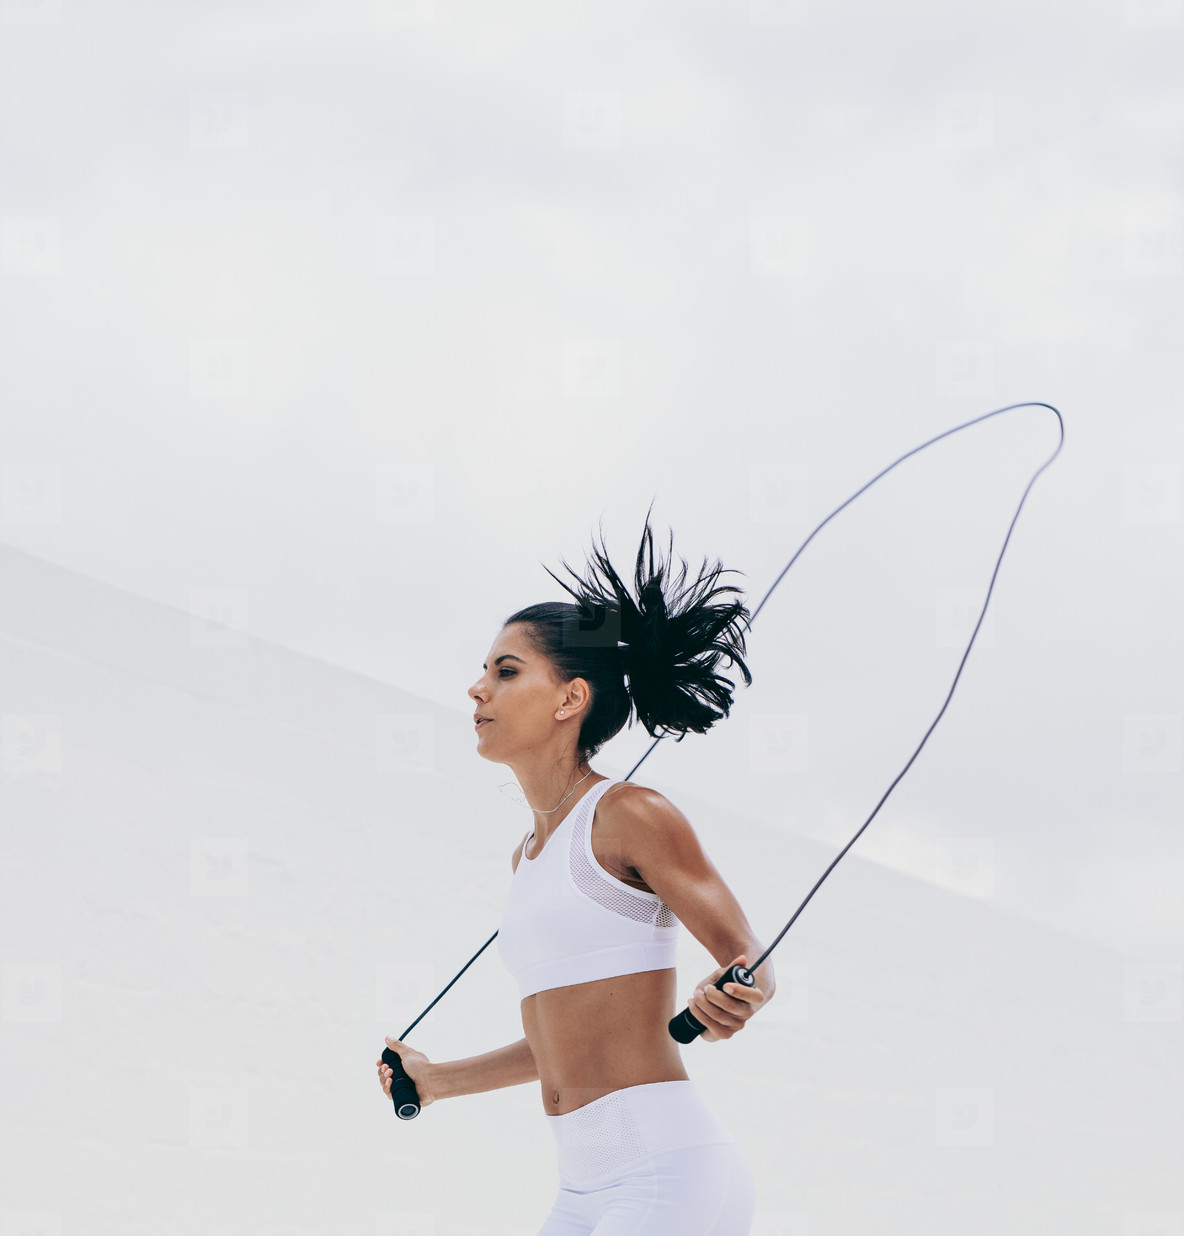 Fitness woman doing workout using a skipping rope